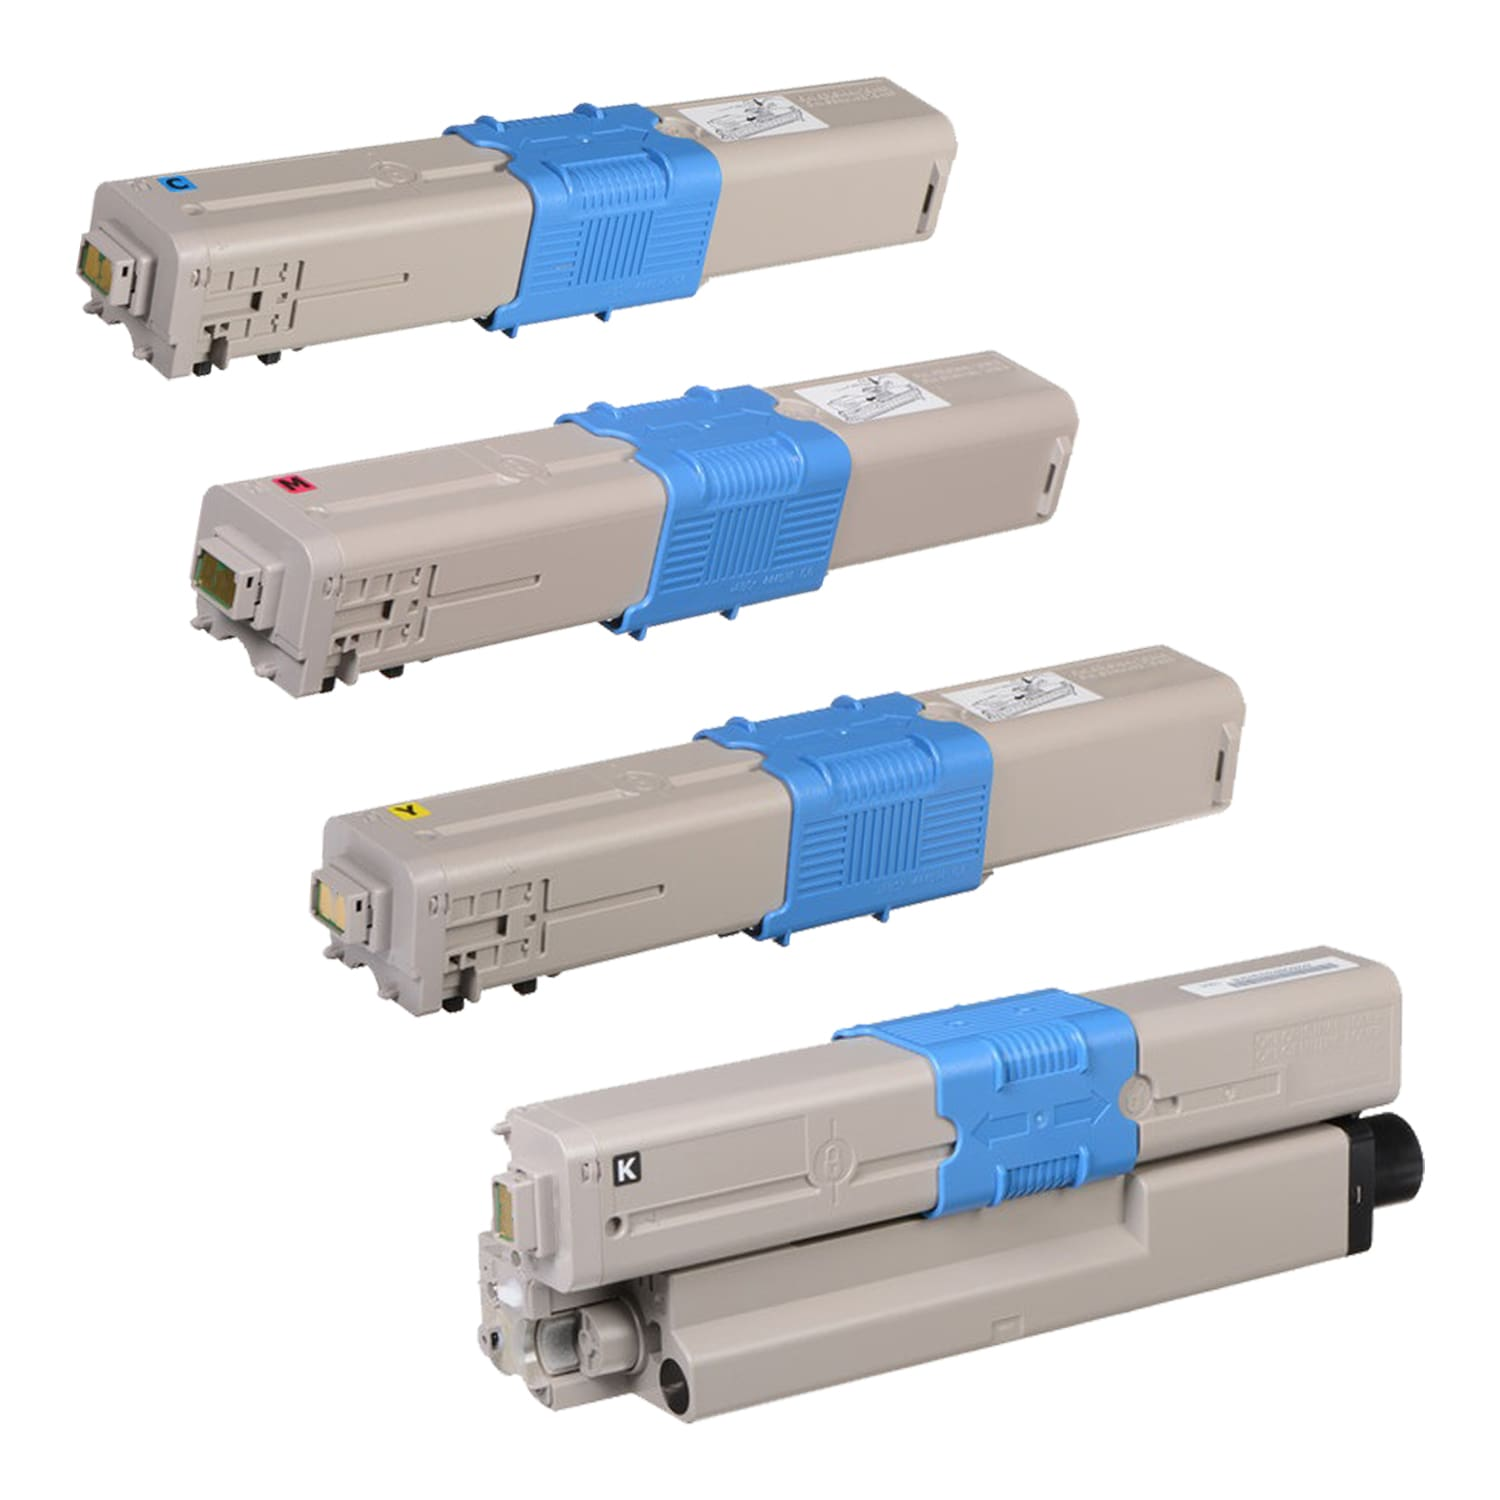 Remanufactured Okidata C310dn Toner Pack - 4 Cartridges